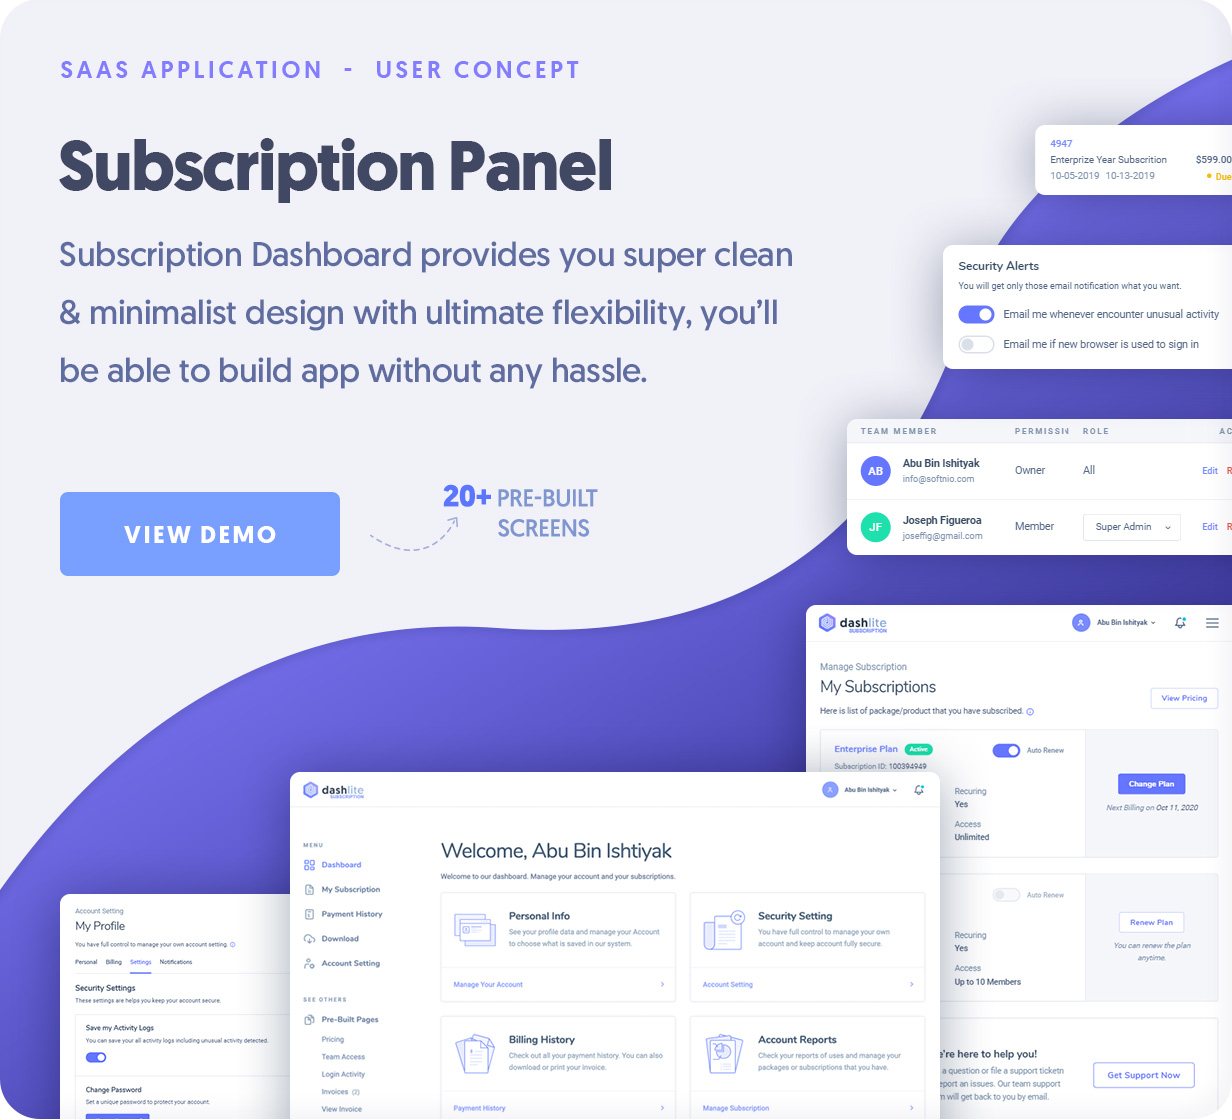 DashLite - SAAS, Subscription Application Dashboard